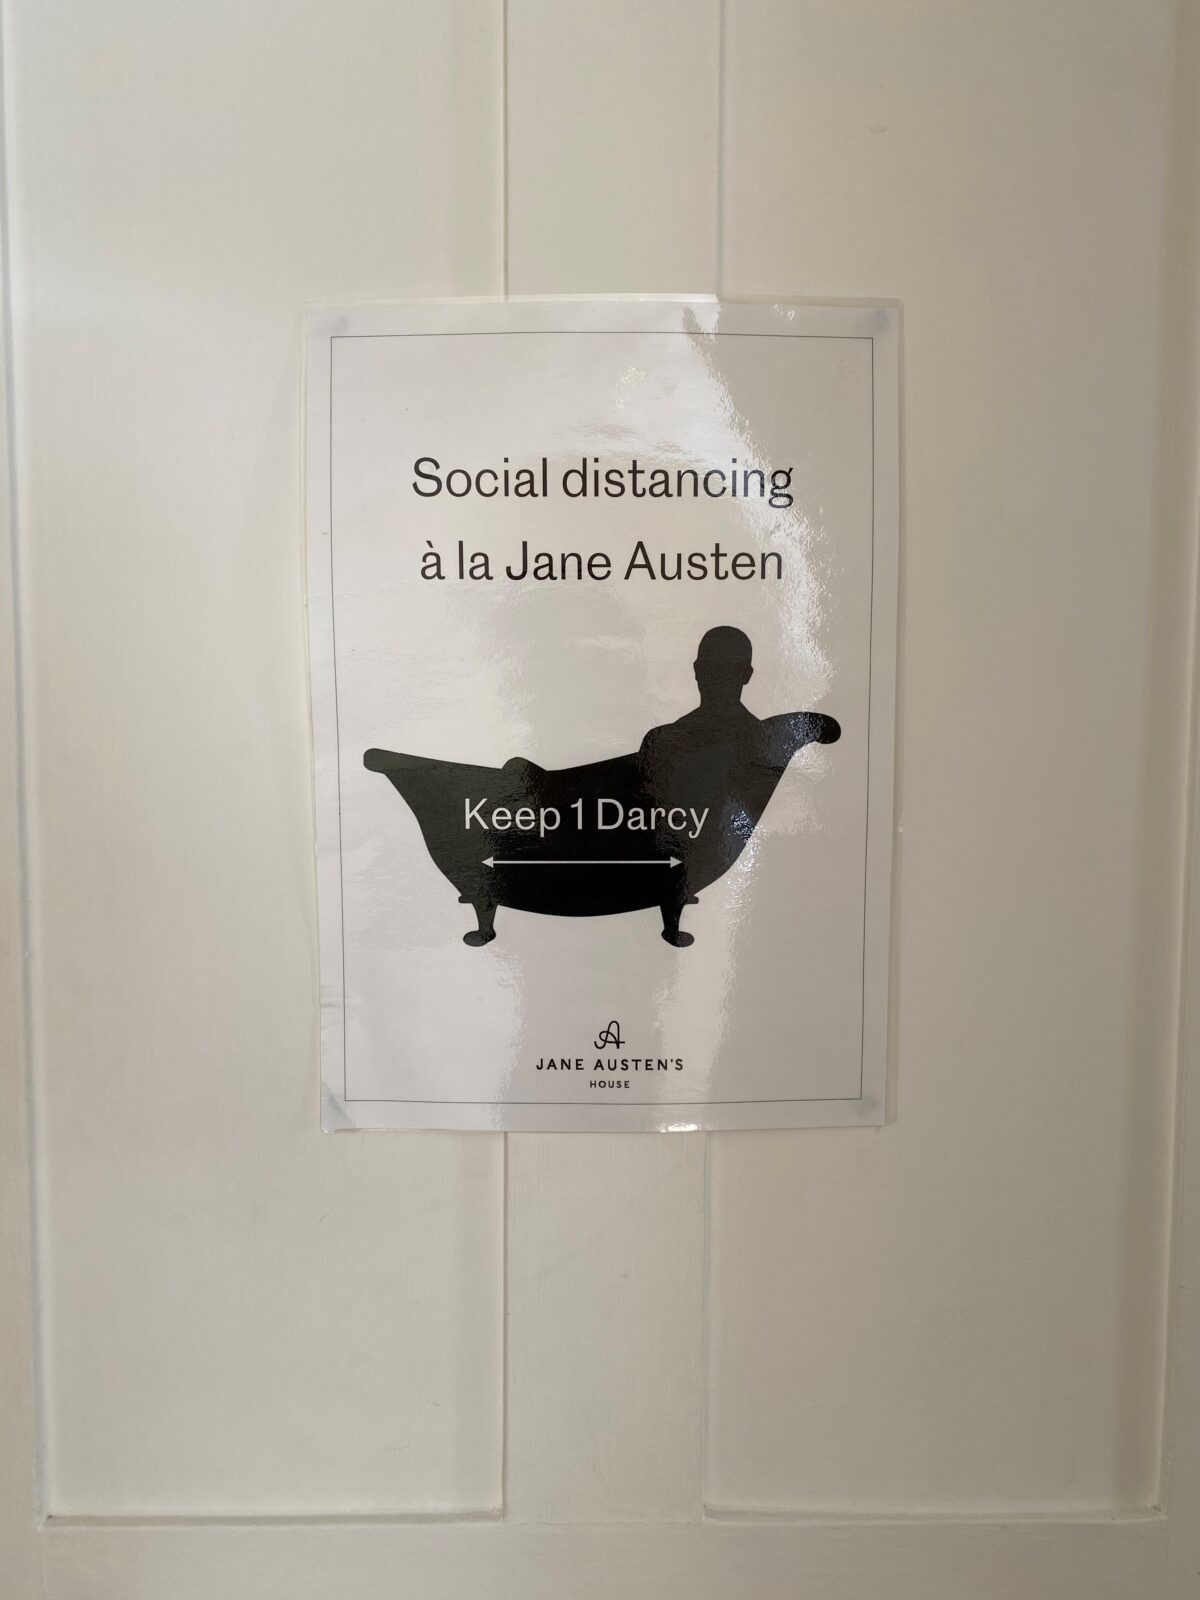 A sign that says 'Social distancing a la Jane Austen' above a silhouette of a figure in the bath